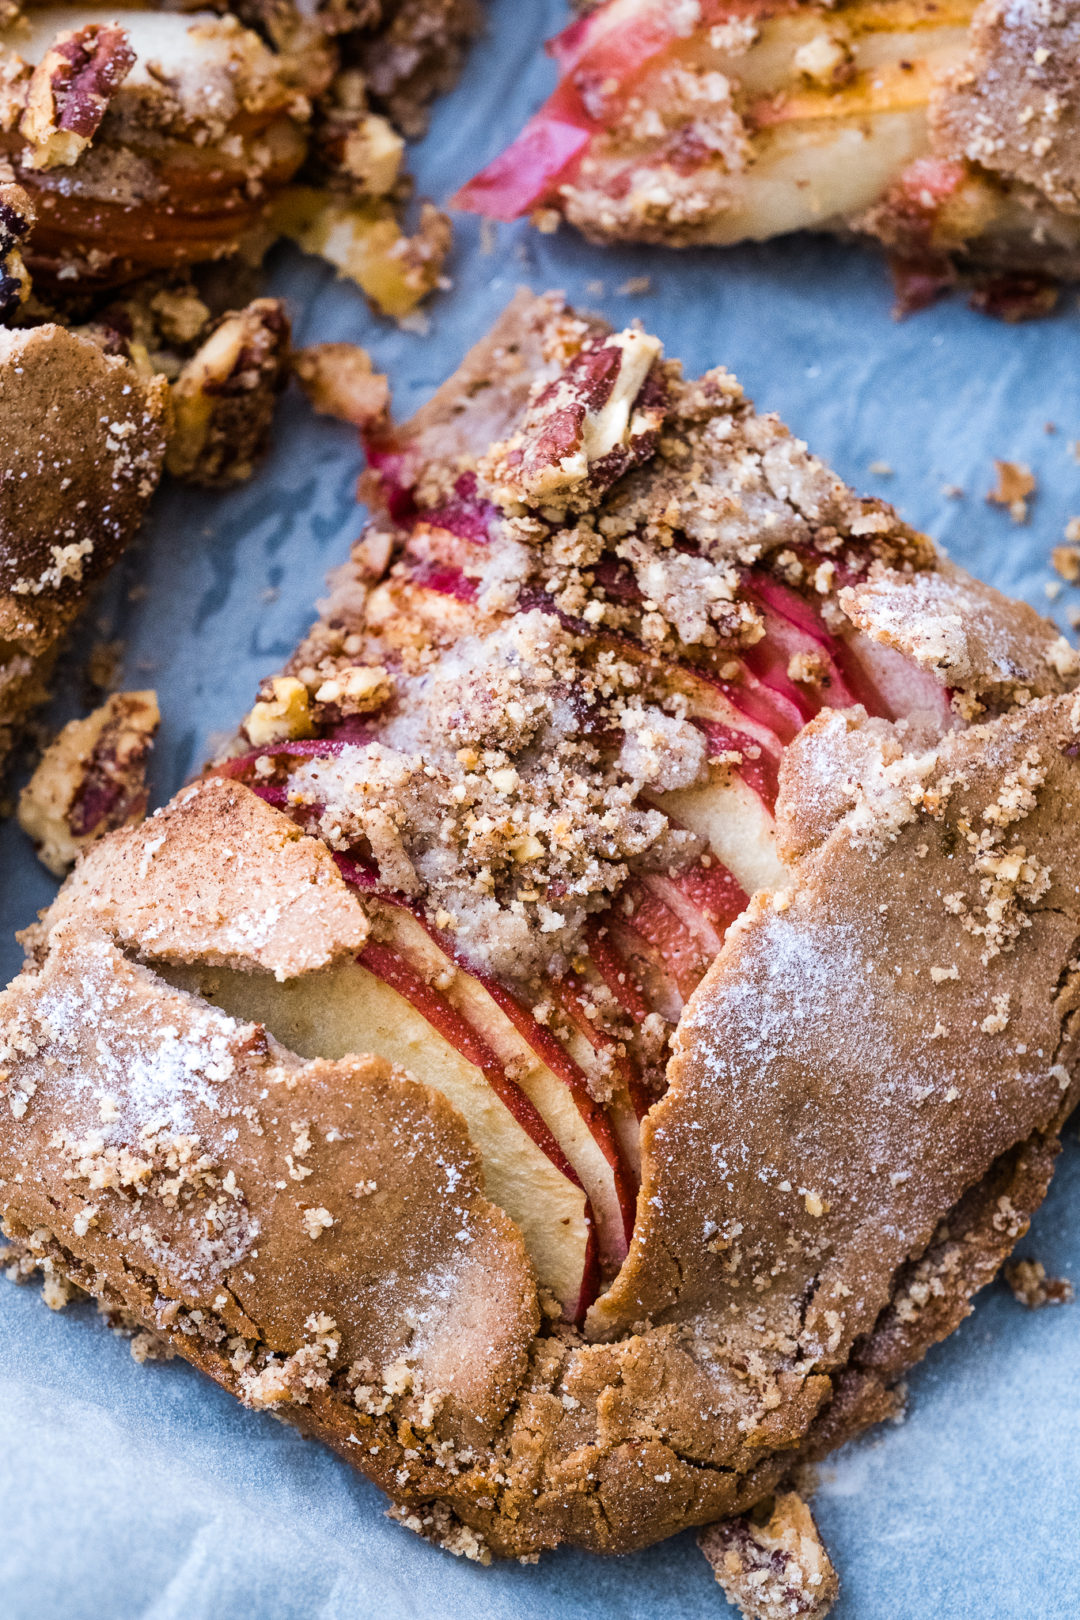 Apple Galette with Hazelnut Crumble